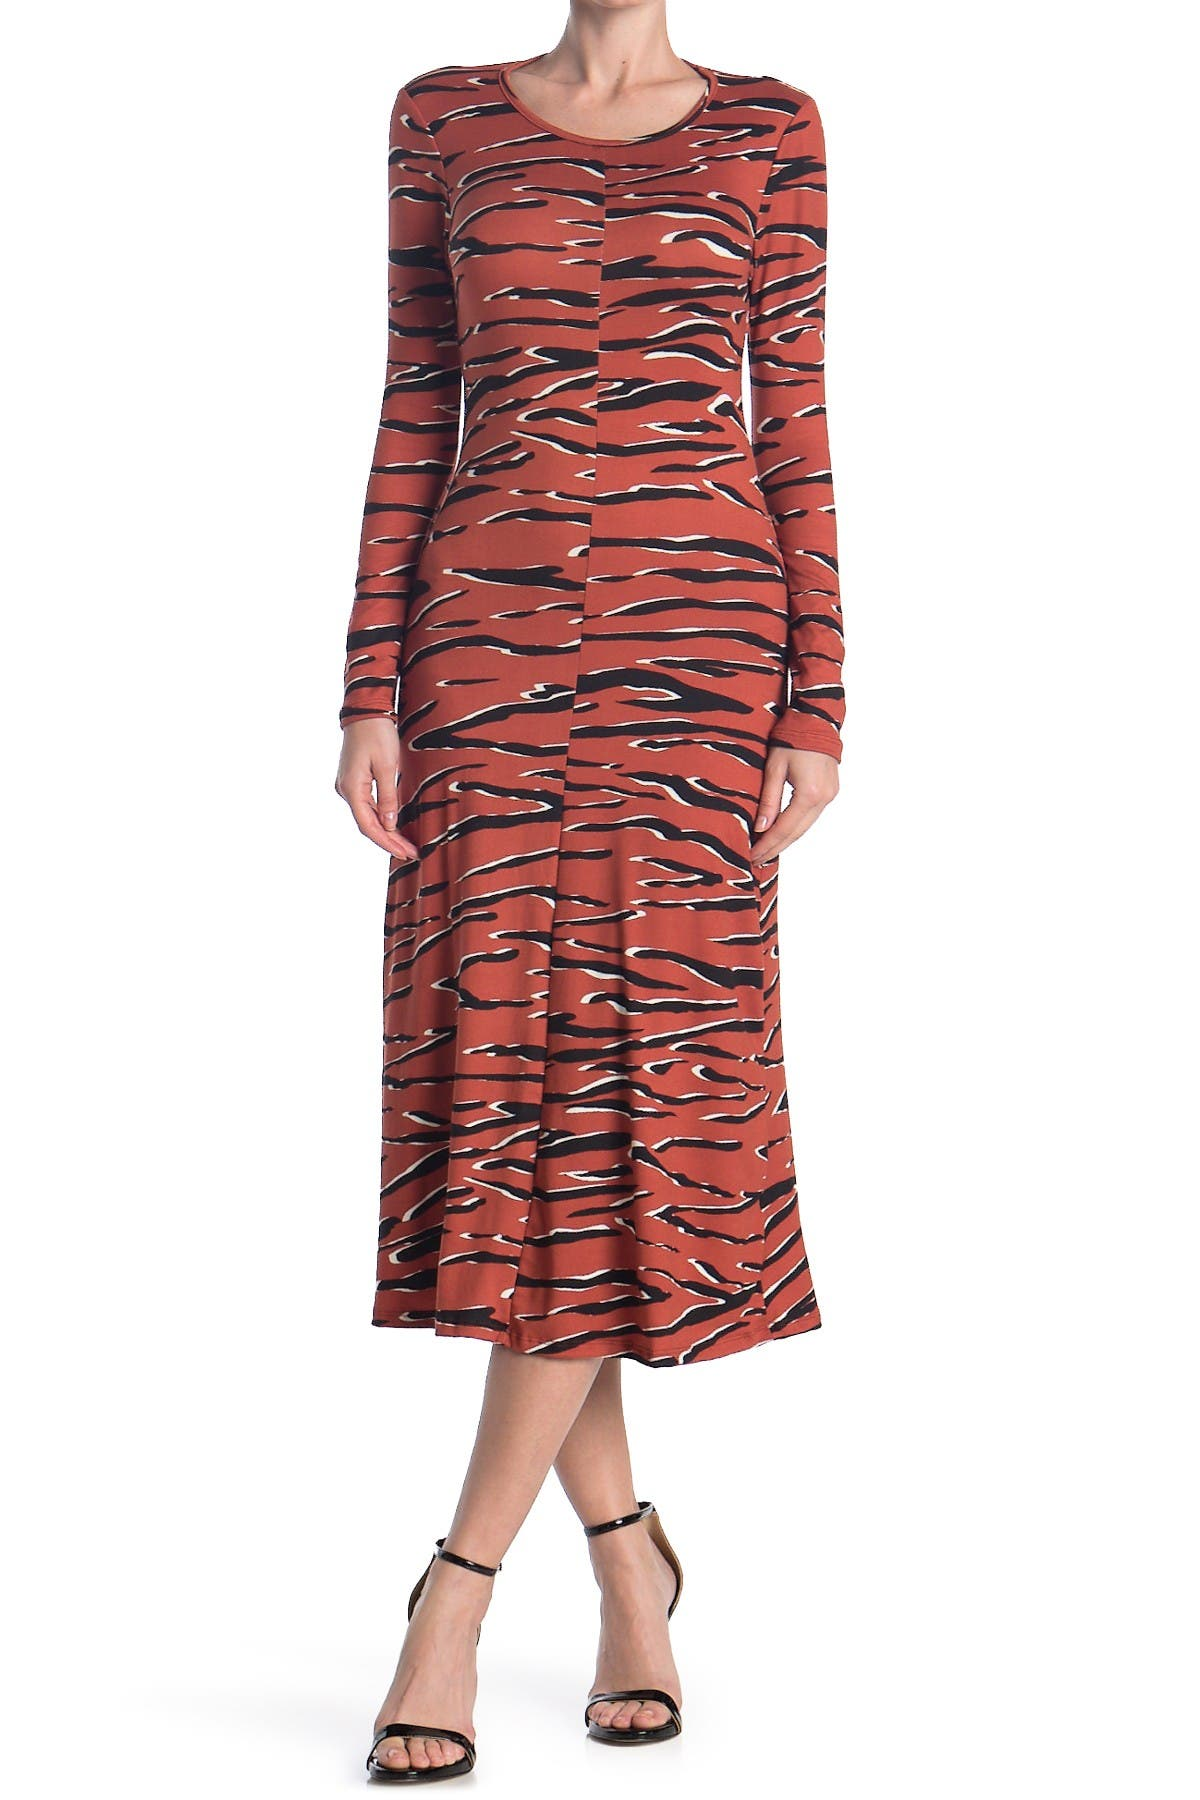 Image of Velvet Torch Long Sleeve Cutout Back Animal Print Dress